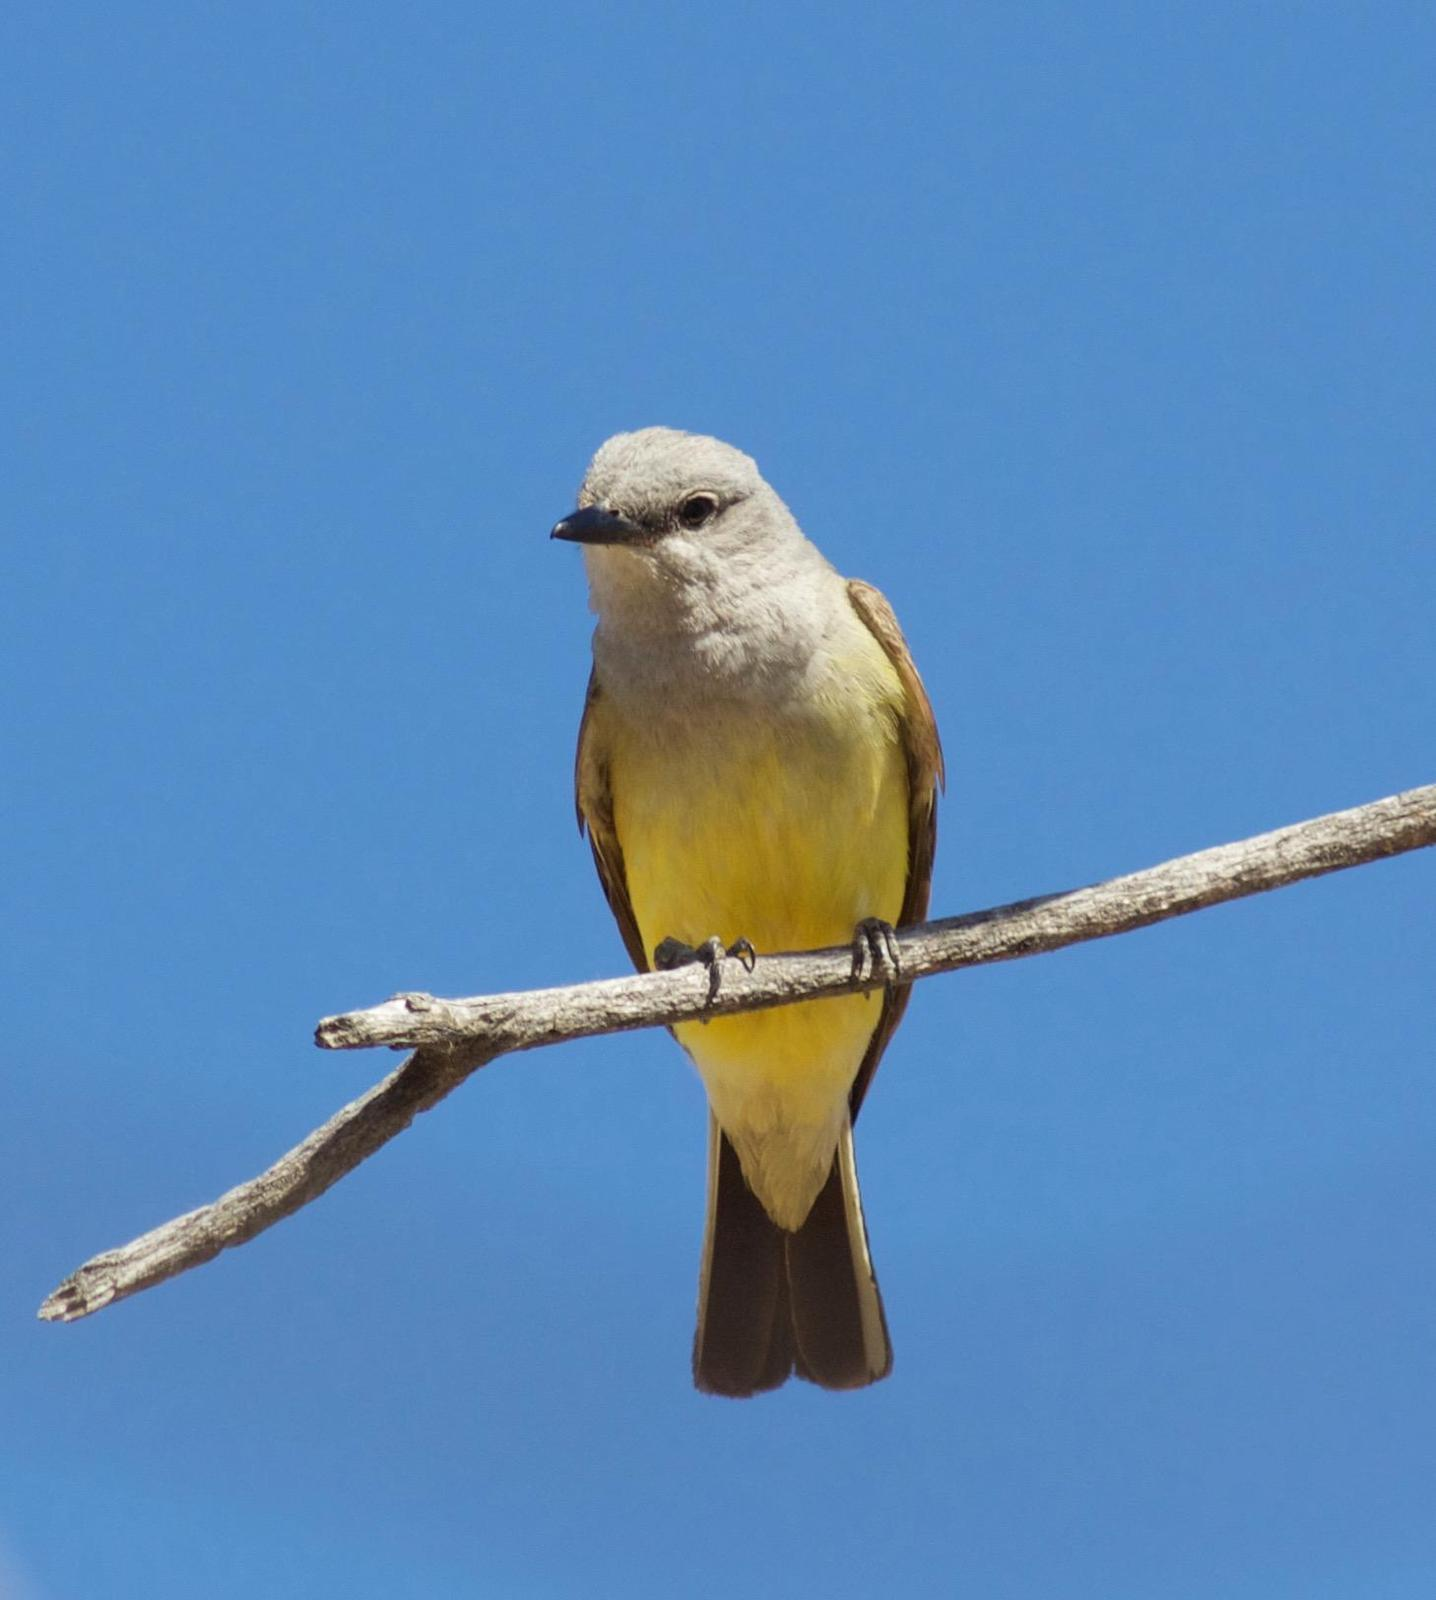 Western Kingbird Photo by Kathryn Keith